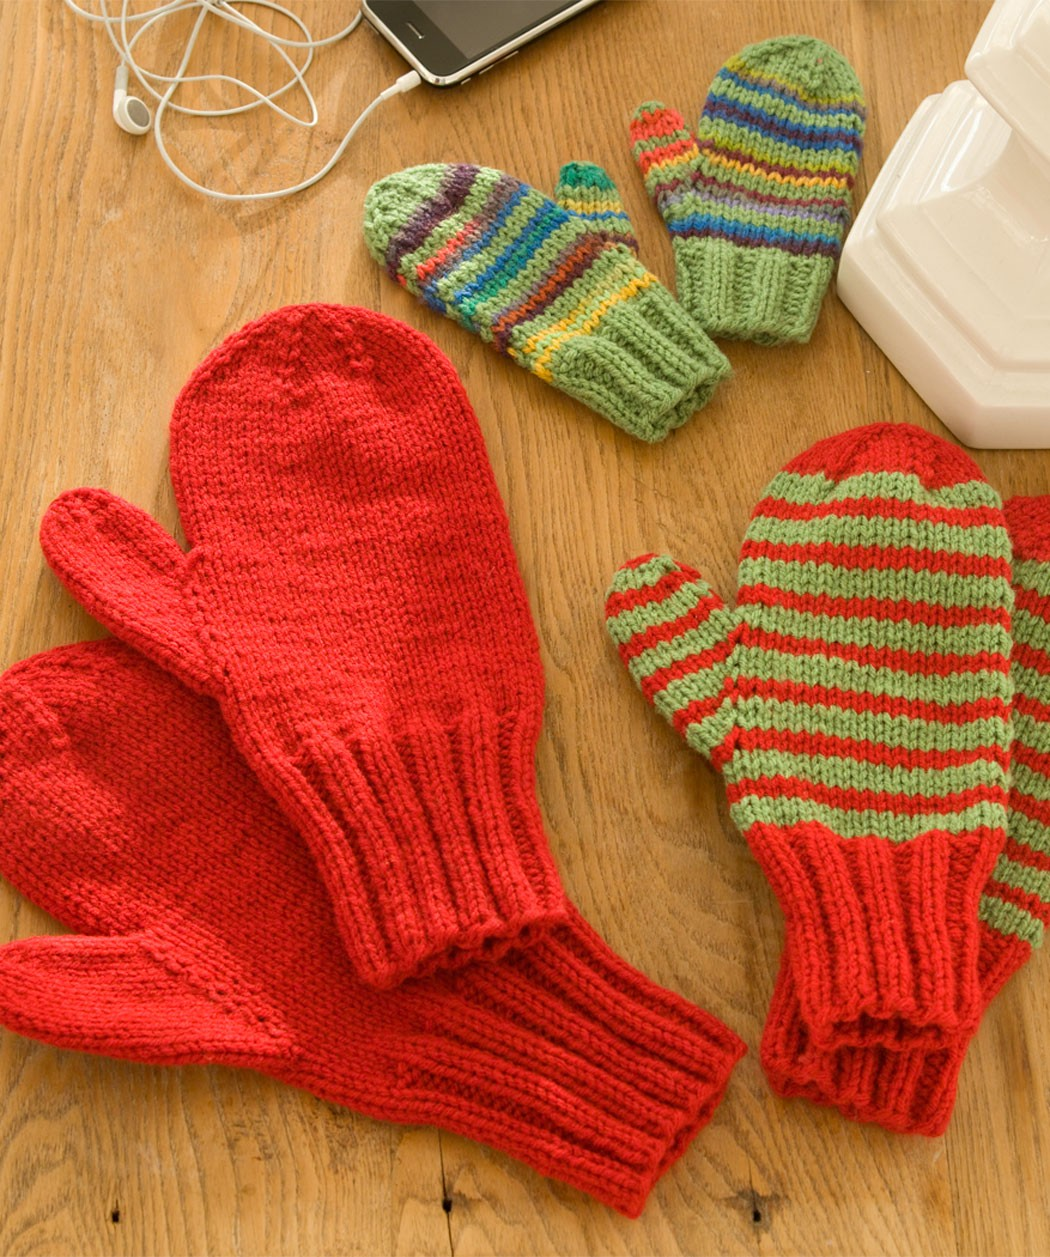 Easy Mitten Knitting Pattern Free : Free Mitten Pattern To Knit myideasbedroom.com